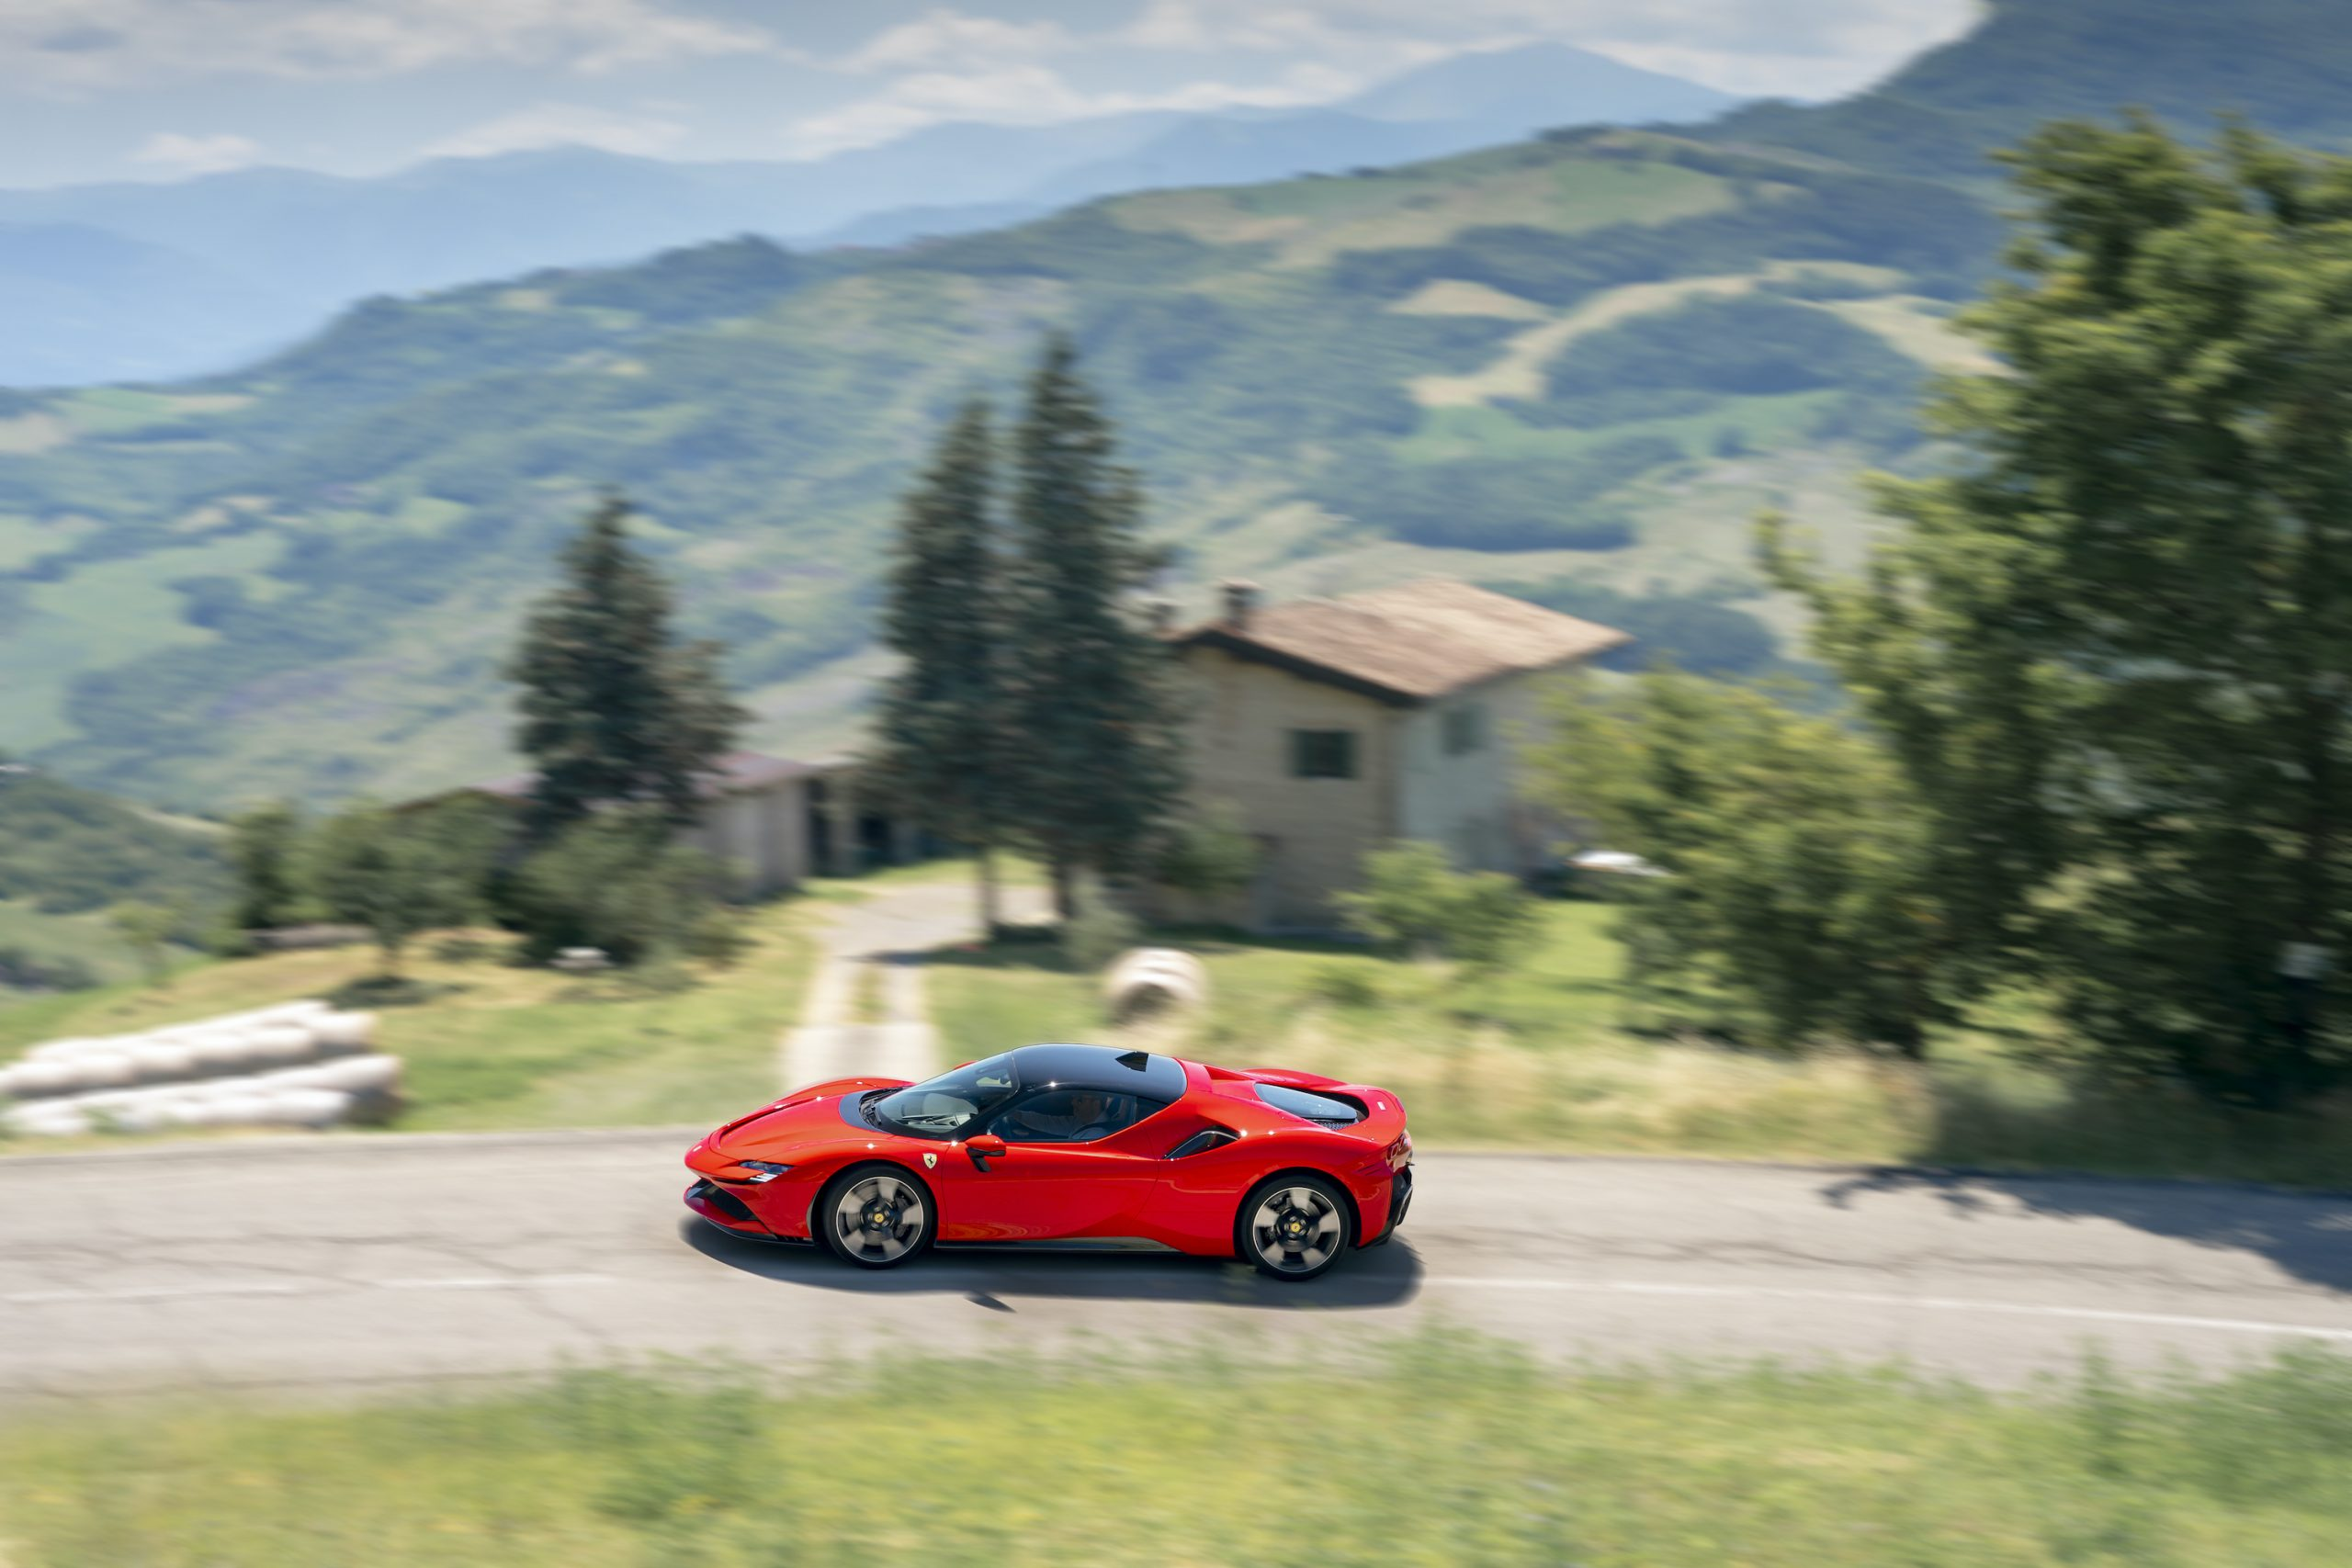 SF90 Stradale side profile hills action